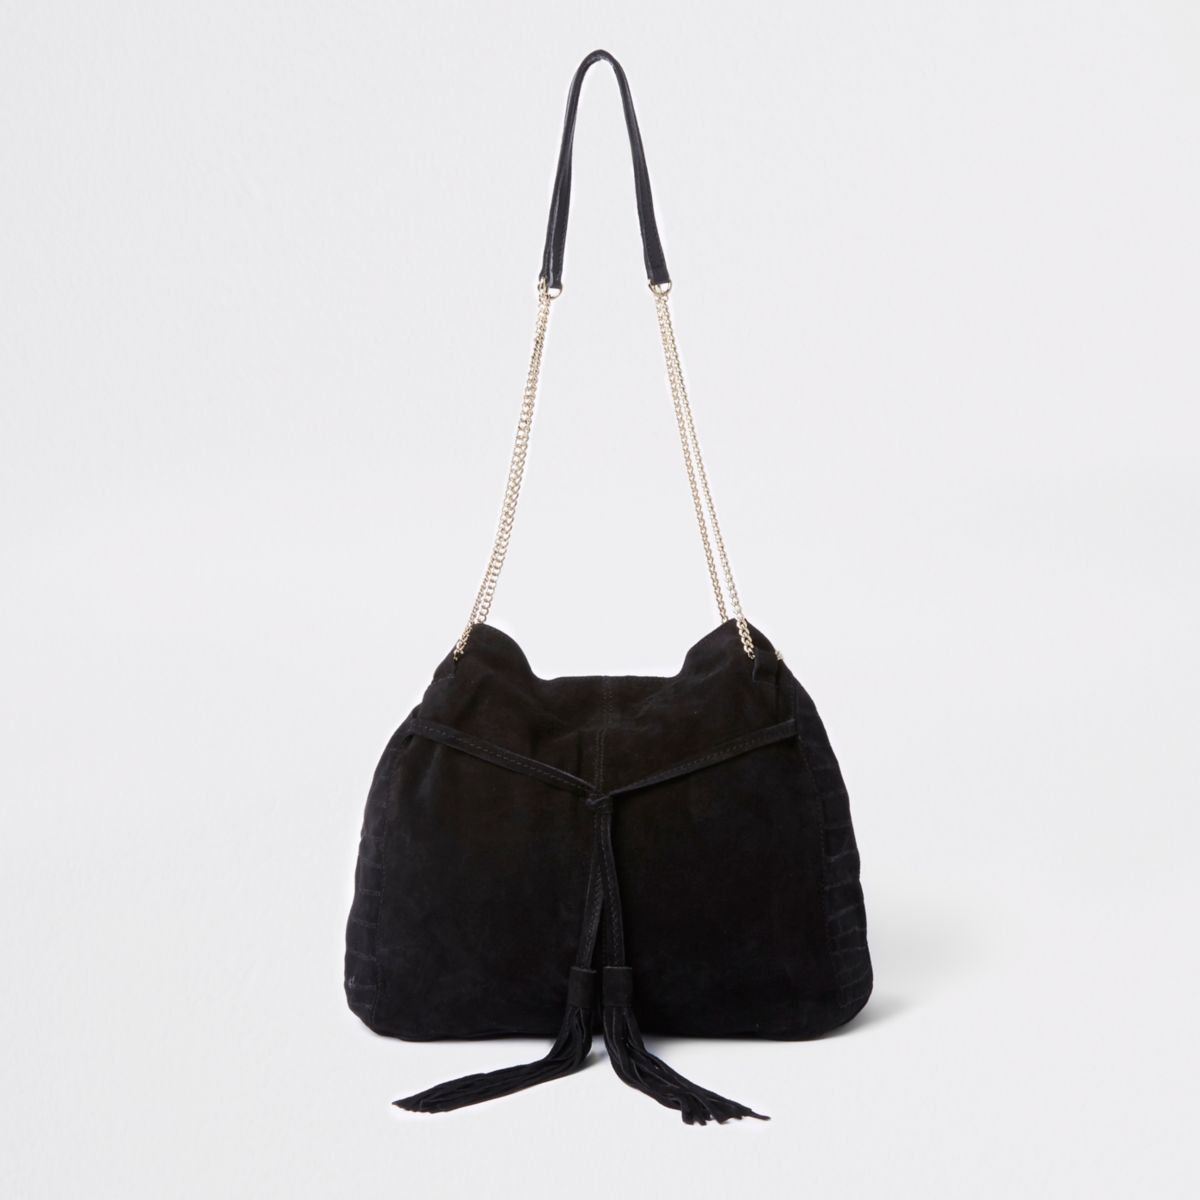 Black leather chain slouch bag